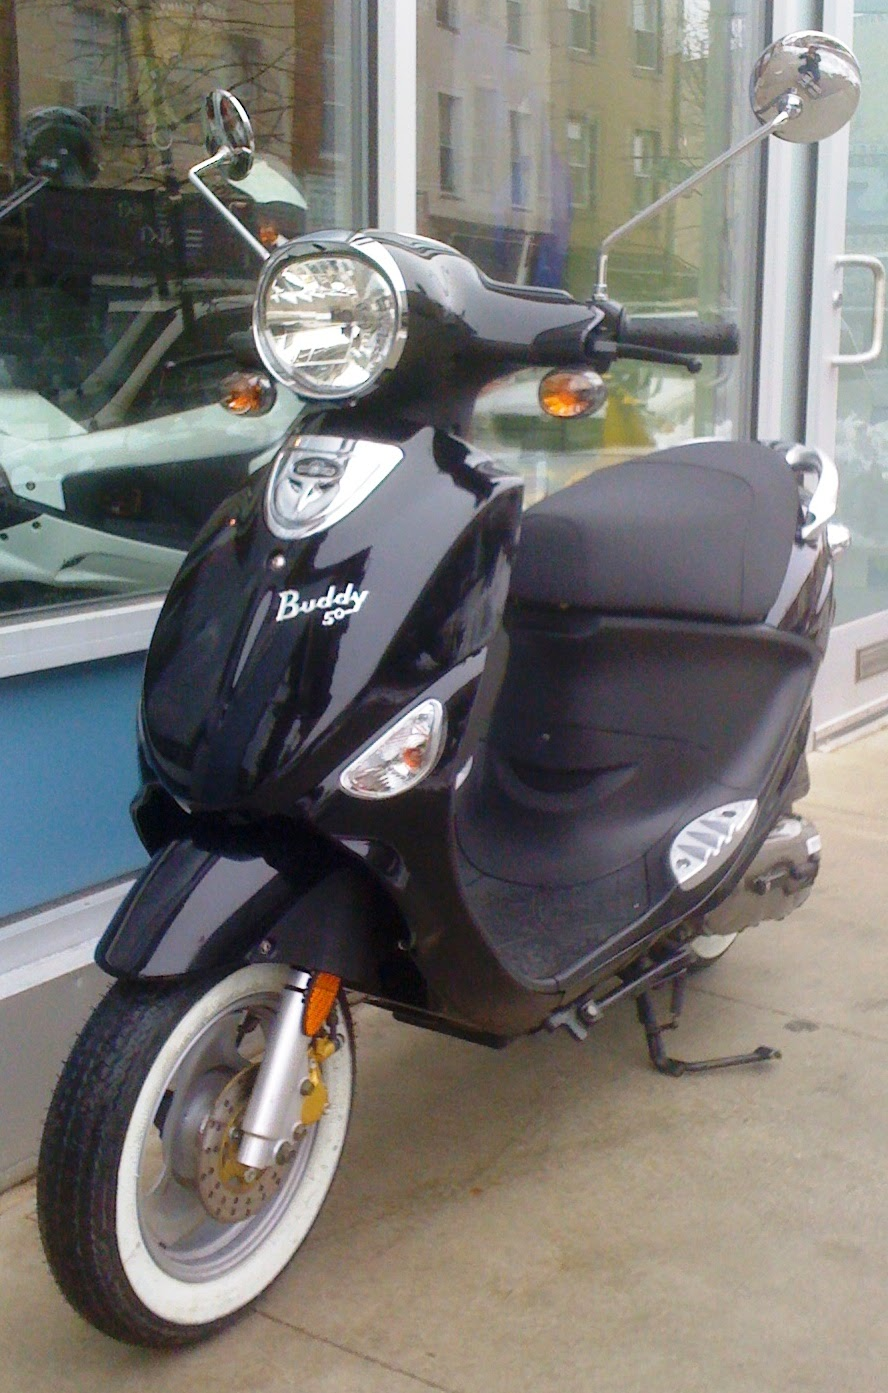 Genuine Scooter Buddy 50 2008 #3